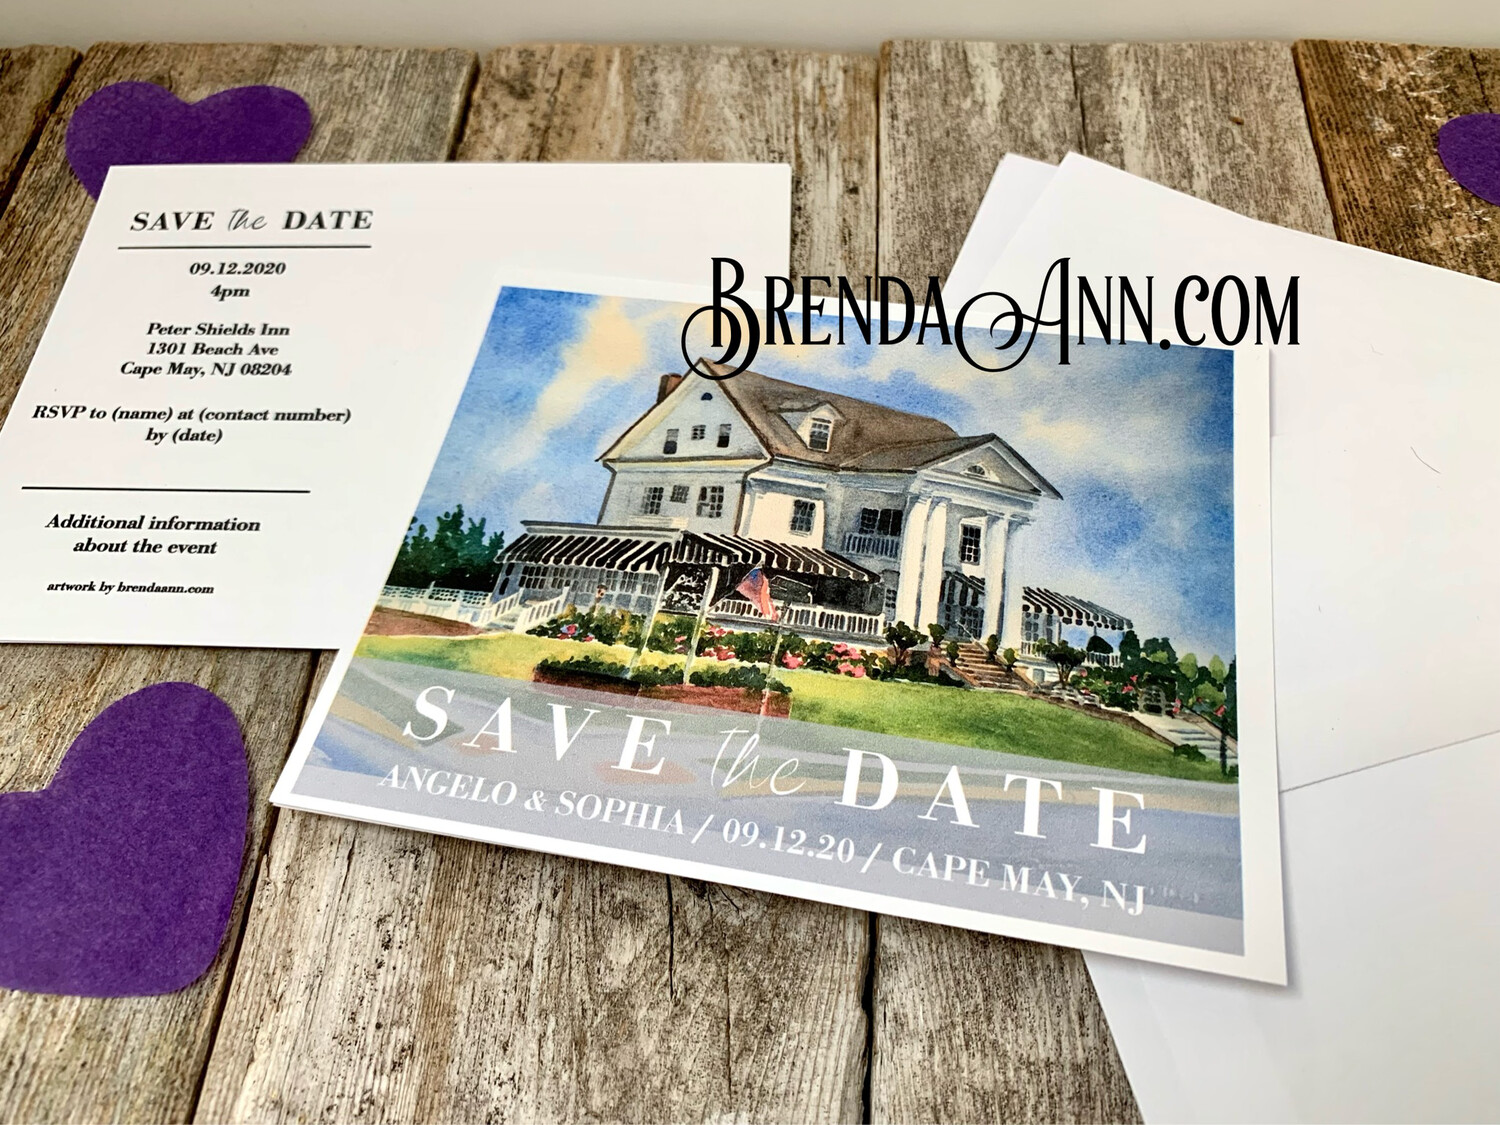 Wedding Save the Date Cards - Peter Shields Inn in Cape May NJ - Watercolor by Brenda Ann